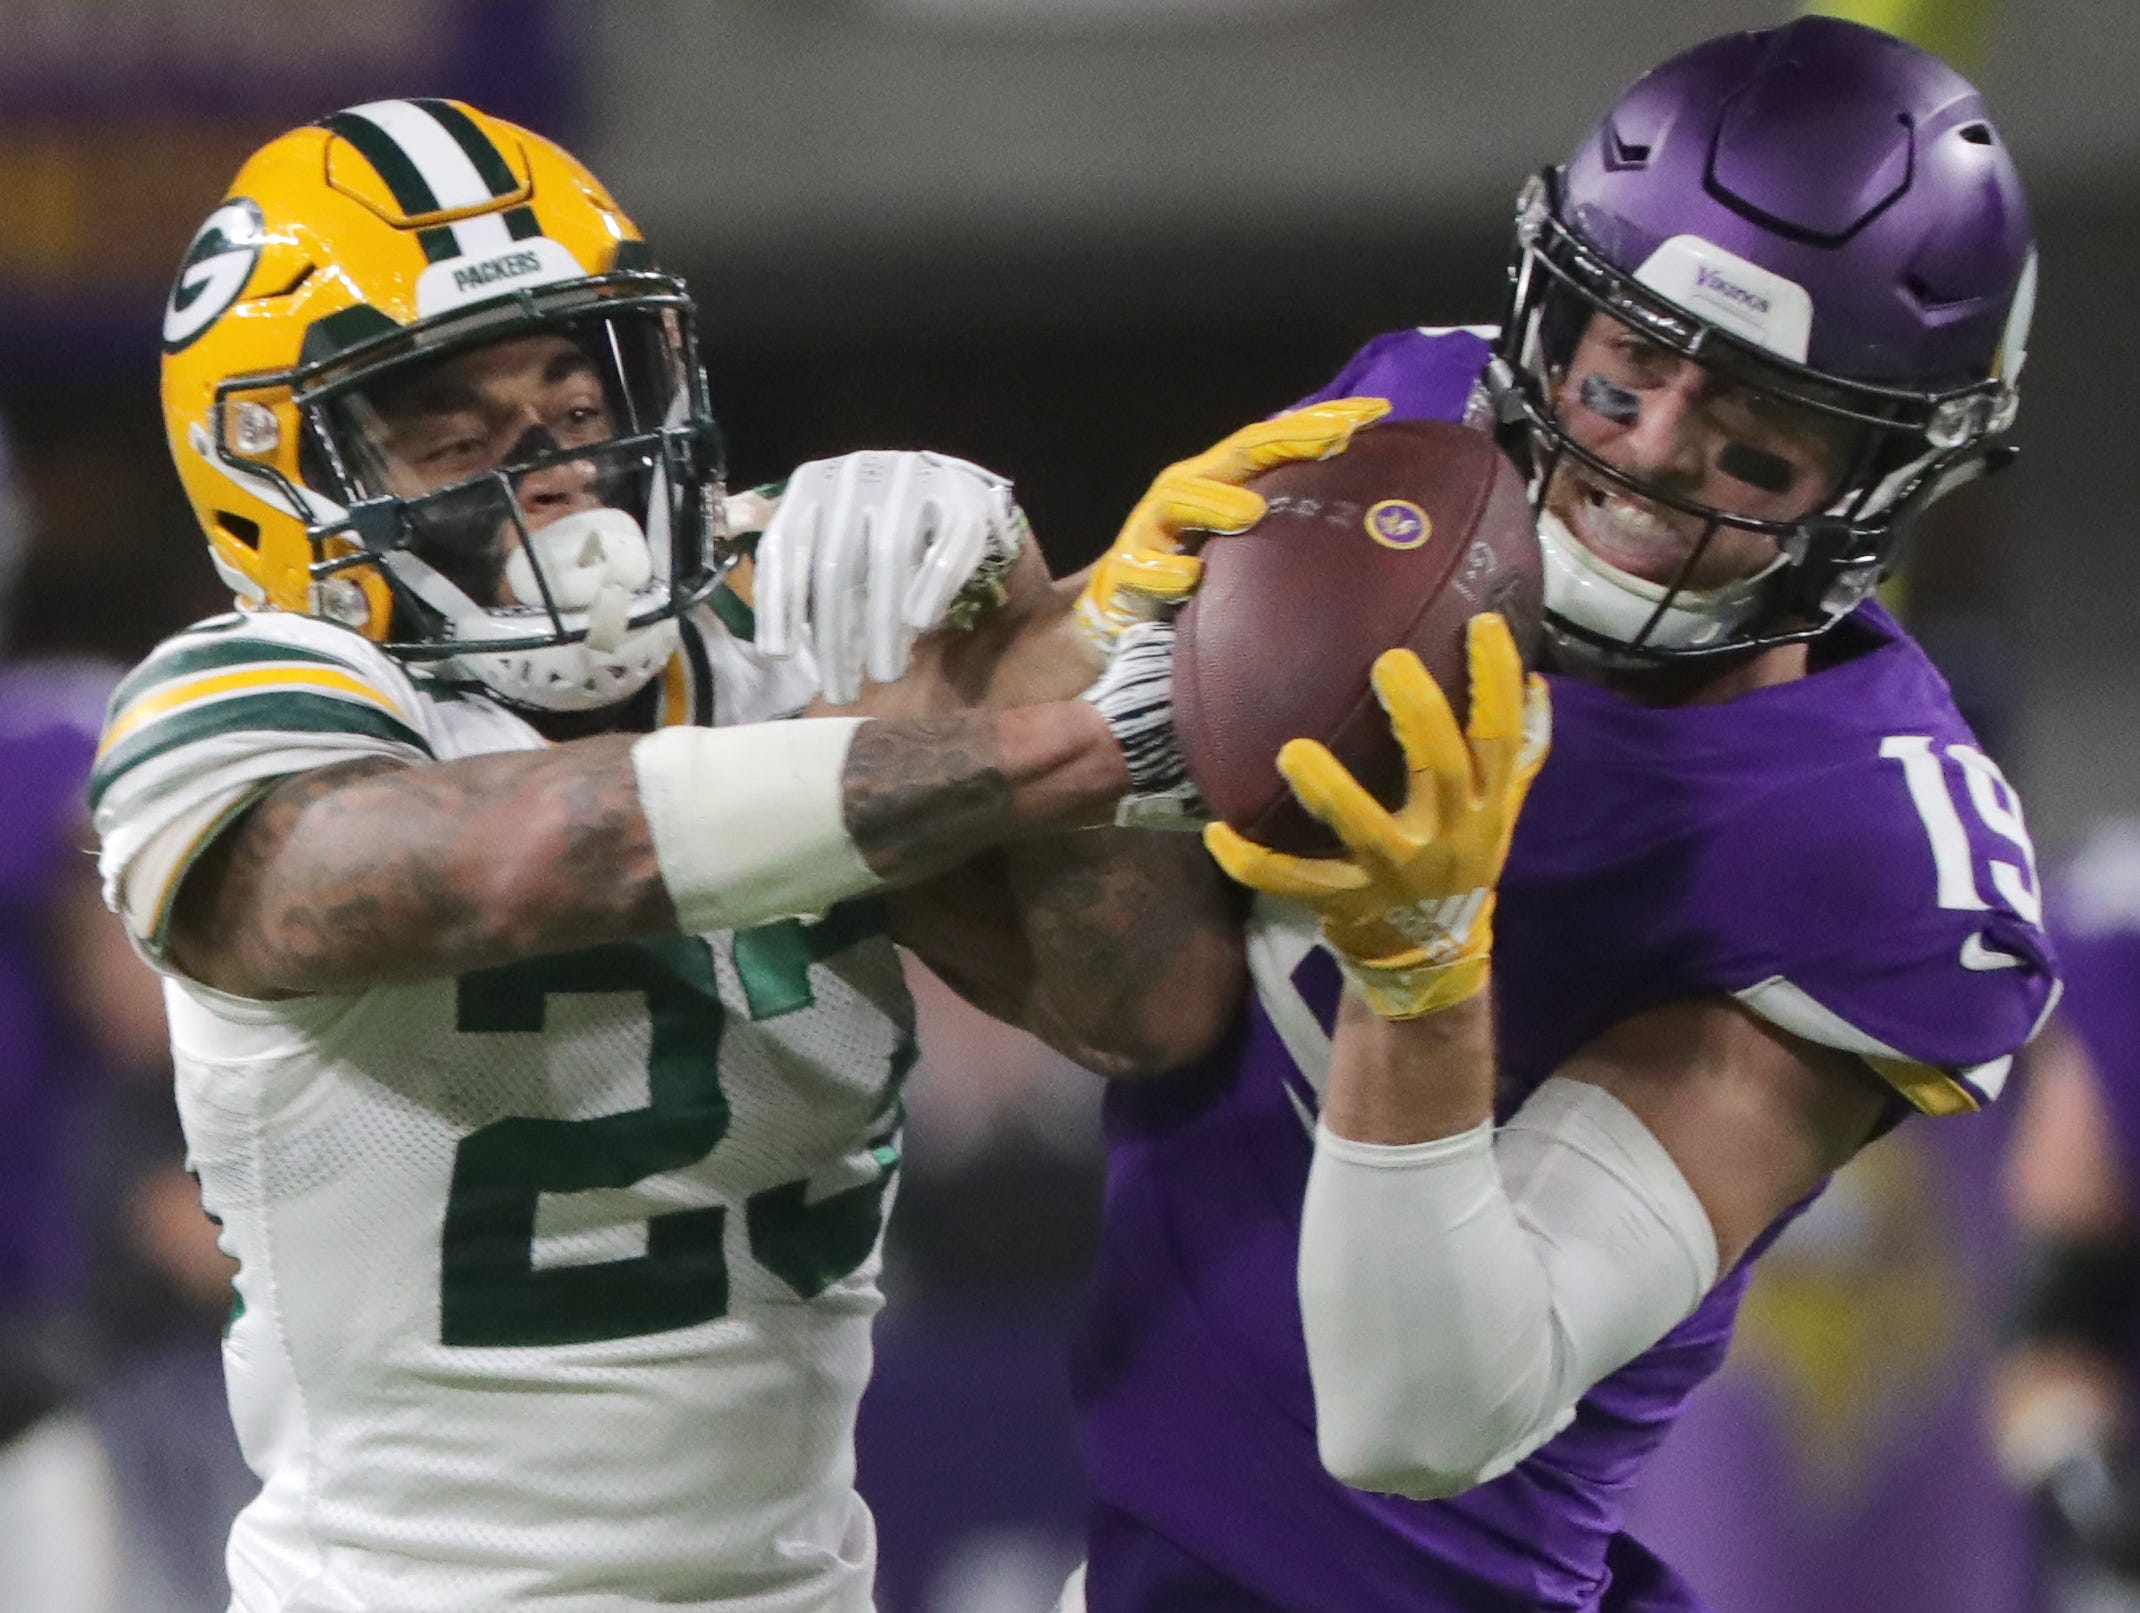 Minnesota Vikings wide receiver Adam Thielen (19) wrestles the ball from Green Bay Packers cornerback Jaire Alexander (23) for a 20-yarrd reception during the second quarter of their game against the Minnesota Vikings Sunday, November 25, 2018 at U.S. Bank Stadium in Minneapolis, Minn.